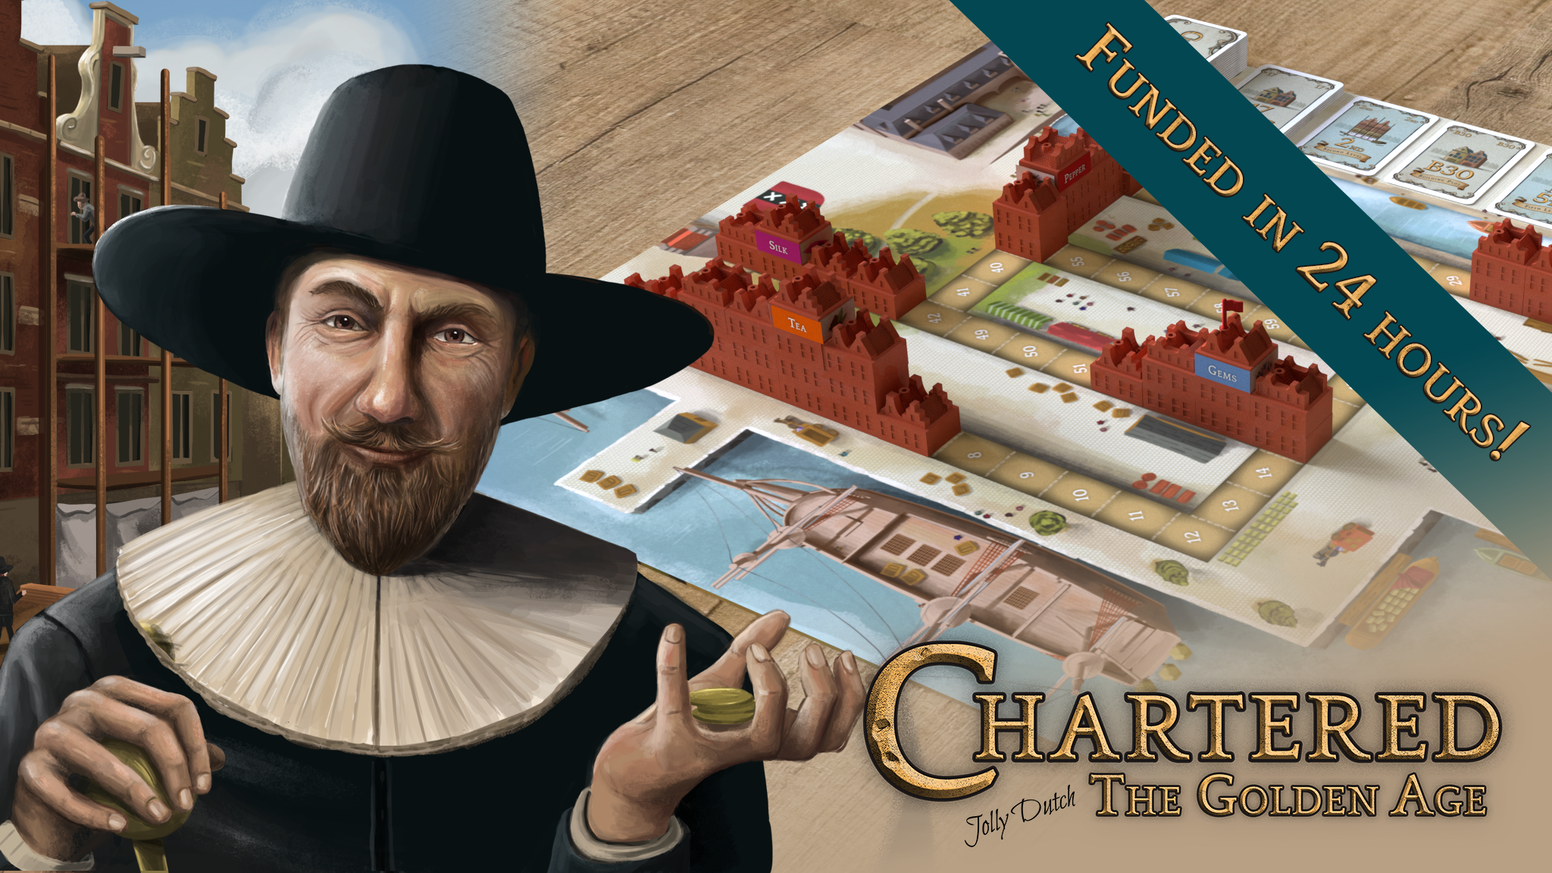 Chartered: The Golden Age - Build and buy your way to becoming Amsterdam's wealthiest merchant in this easy to learn boardgame